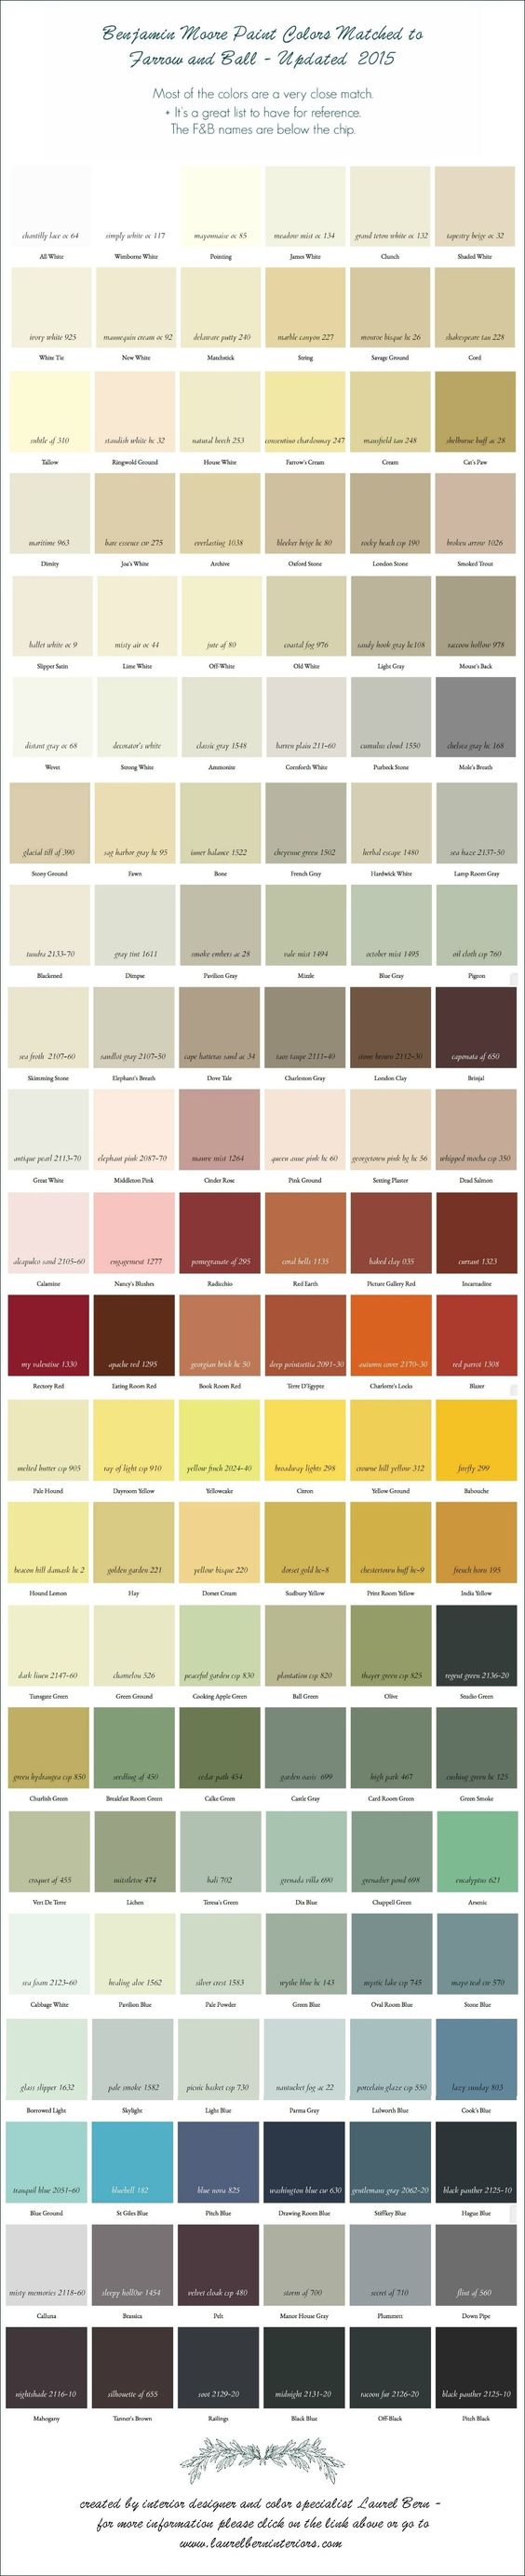 paint colors charts and black panthers on pinterest on benjamin moore exterior color chart id=50665